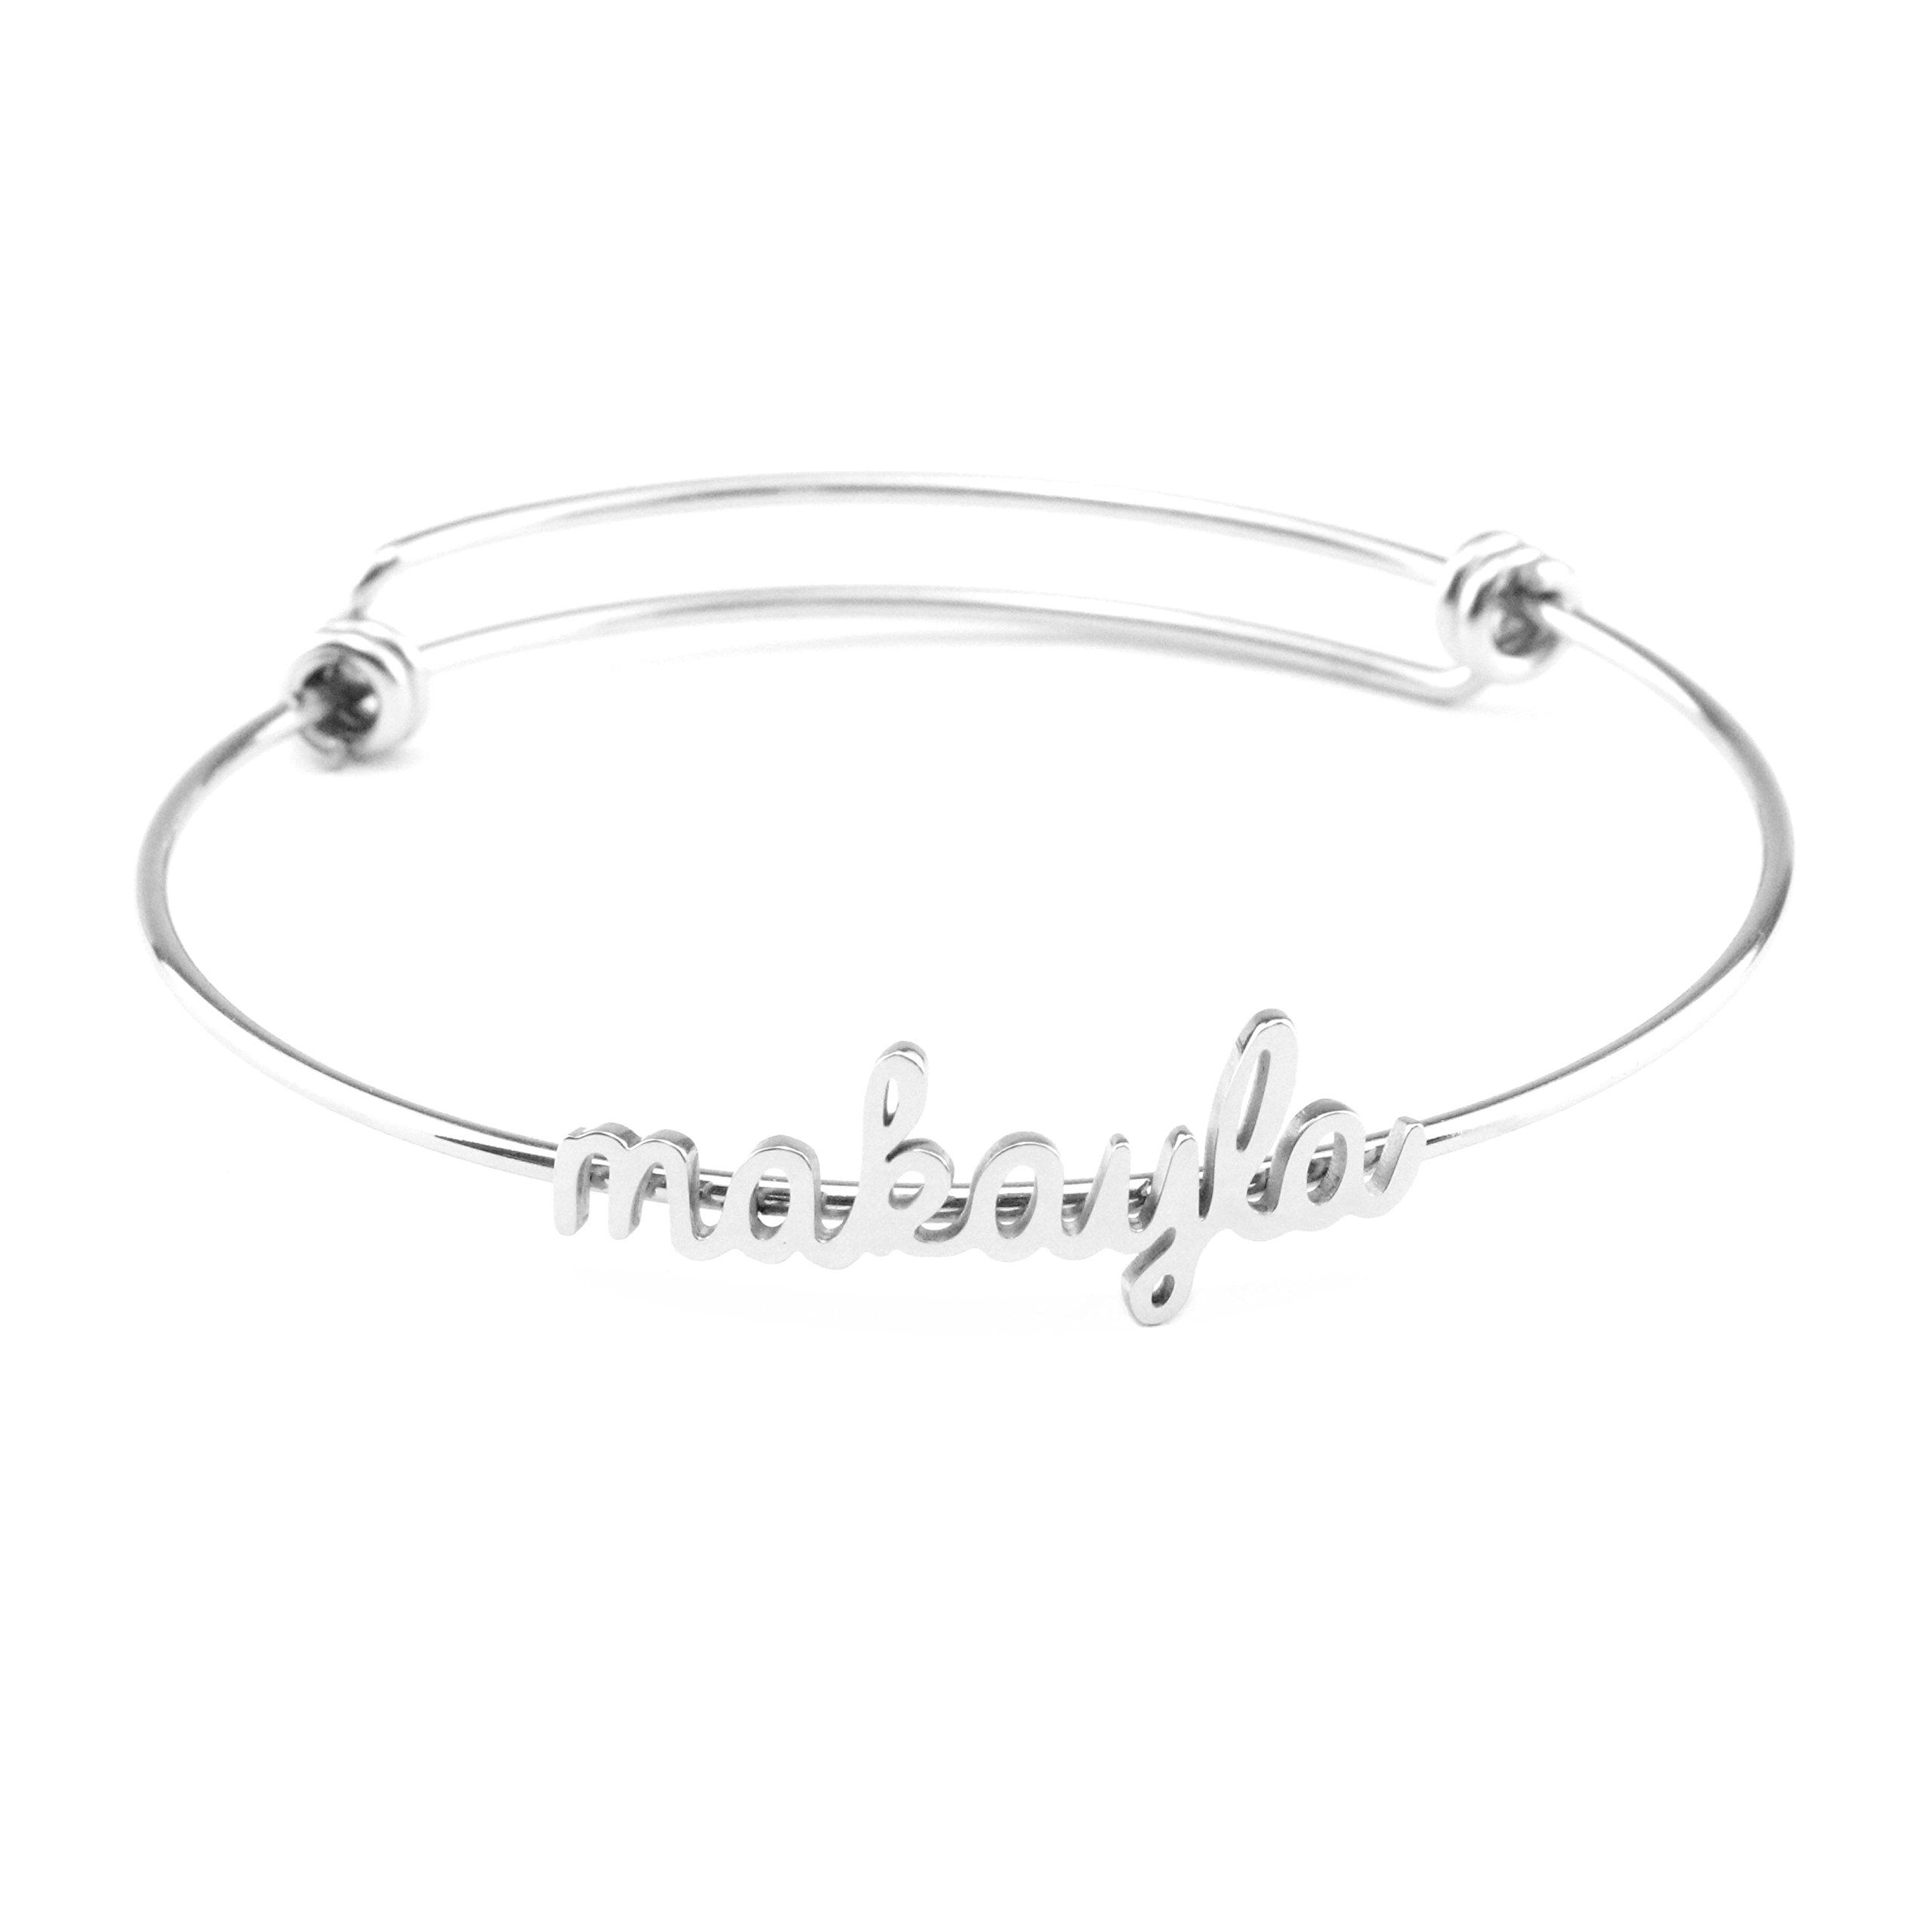 Yiyang Name Bangles for Teen Girls Personalized Name Bracelets Jewelry Gift for Friends Women Name Makayla